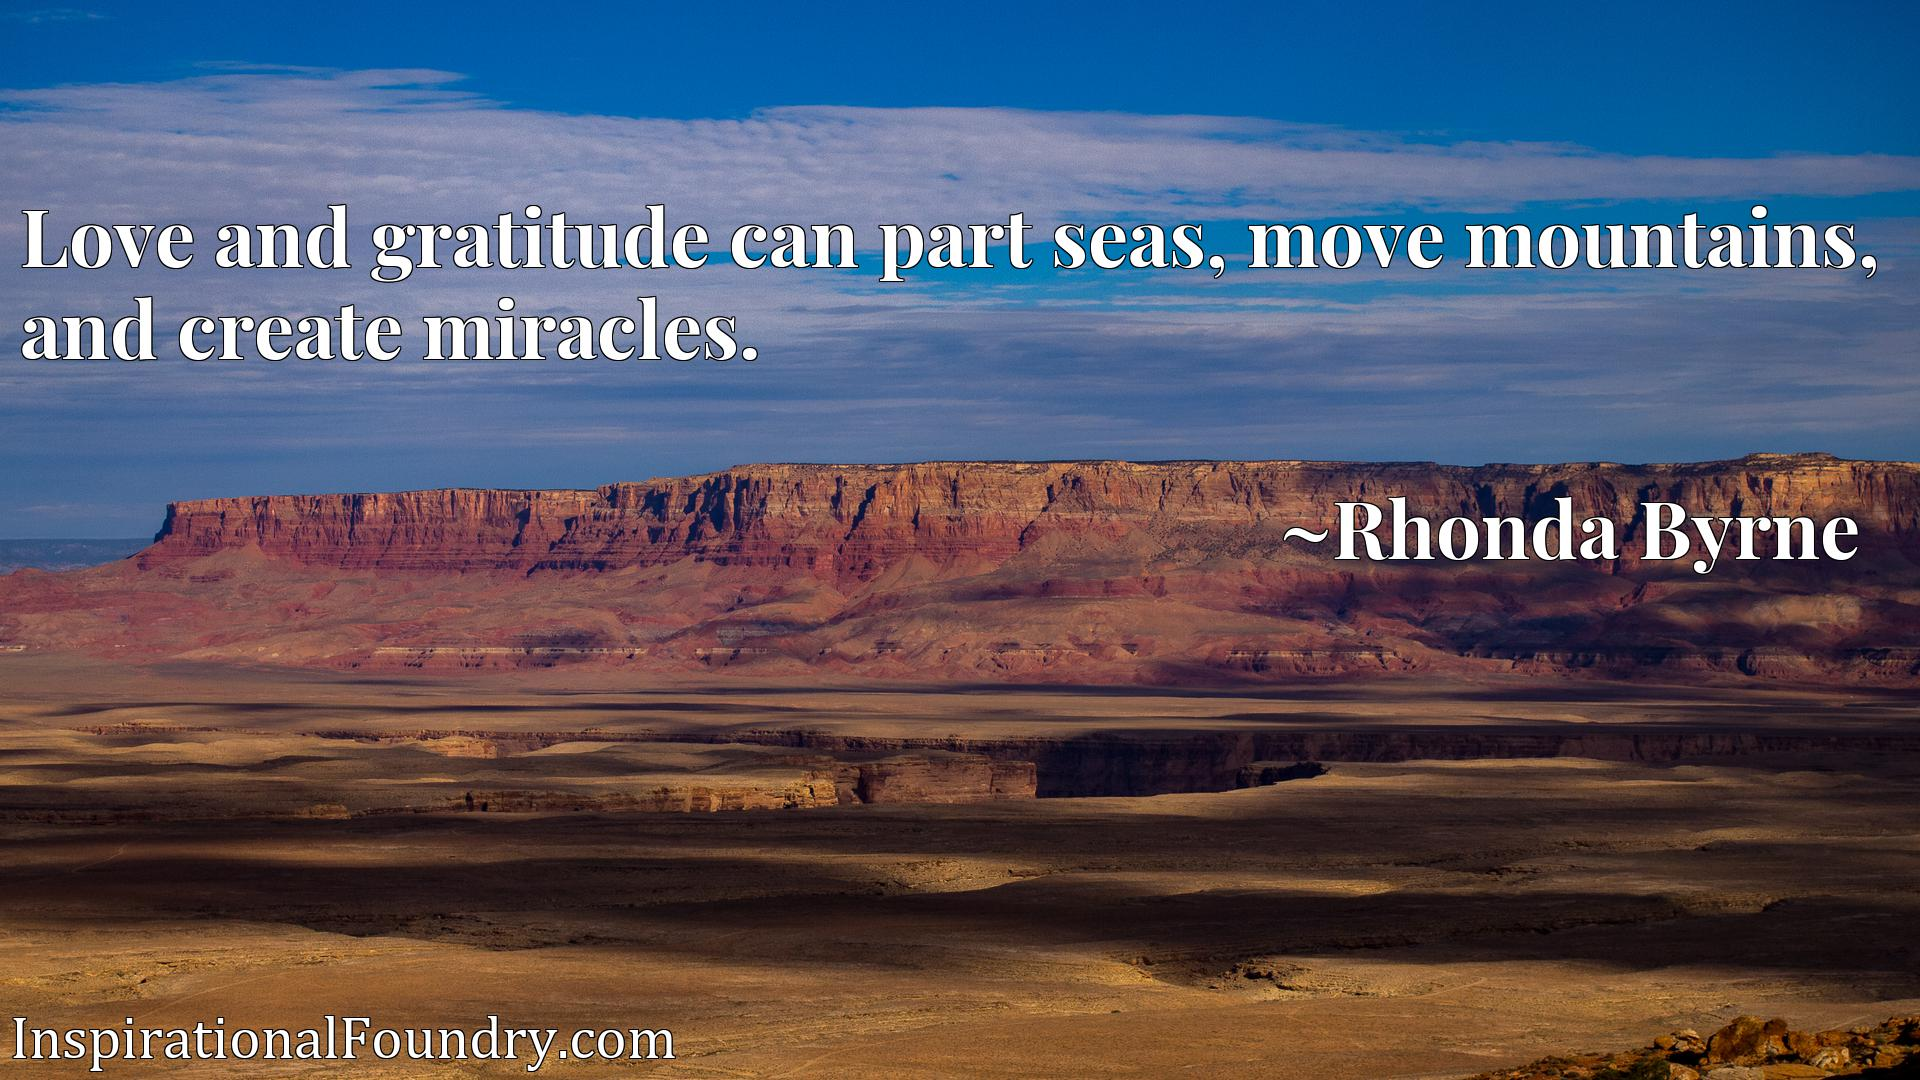 Love and gratitude can part seas, move mountains, and create miracles.